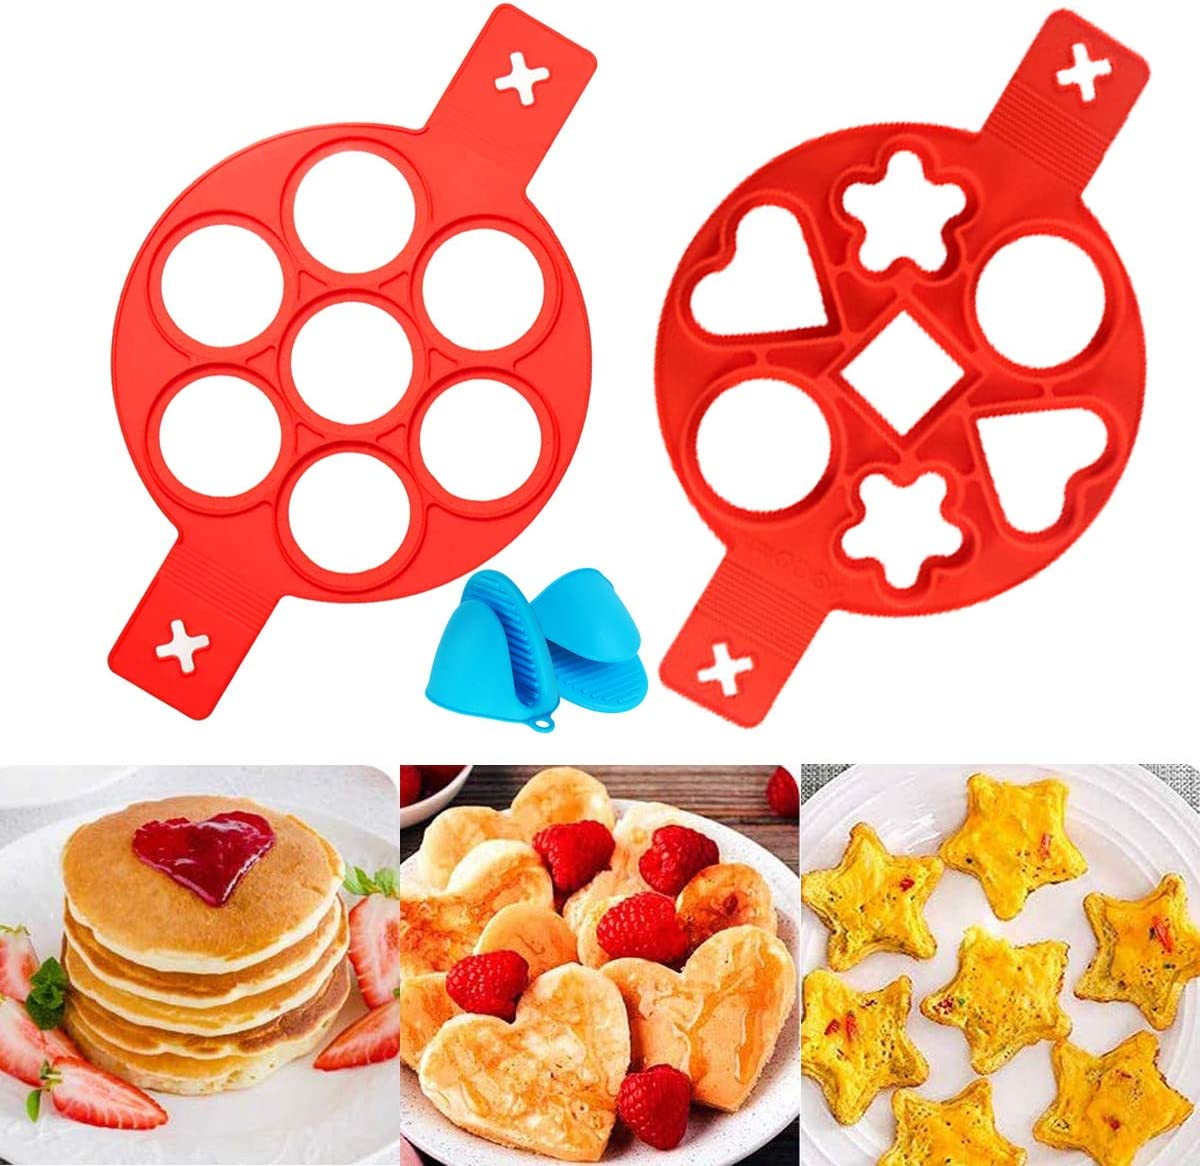 QAQGEAR 2 PCS Pancake Mold Maker Cooking Tool for Frying Muffin Pancake or Shaping Eggs Silicone hand clip Nonstick Silicone Egg Rings Egg Cooker Muffin Round//Heart Shape Mold Fried Egg Mold